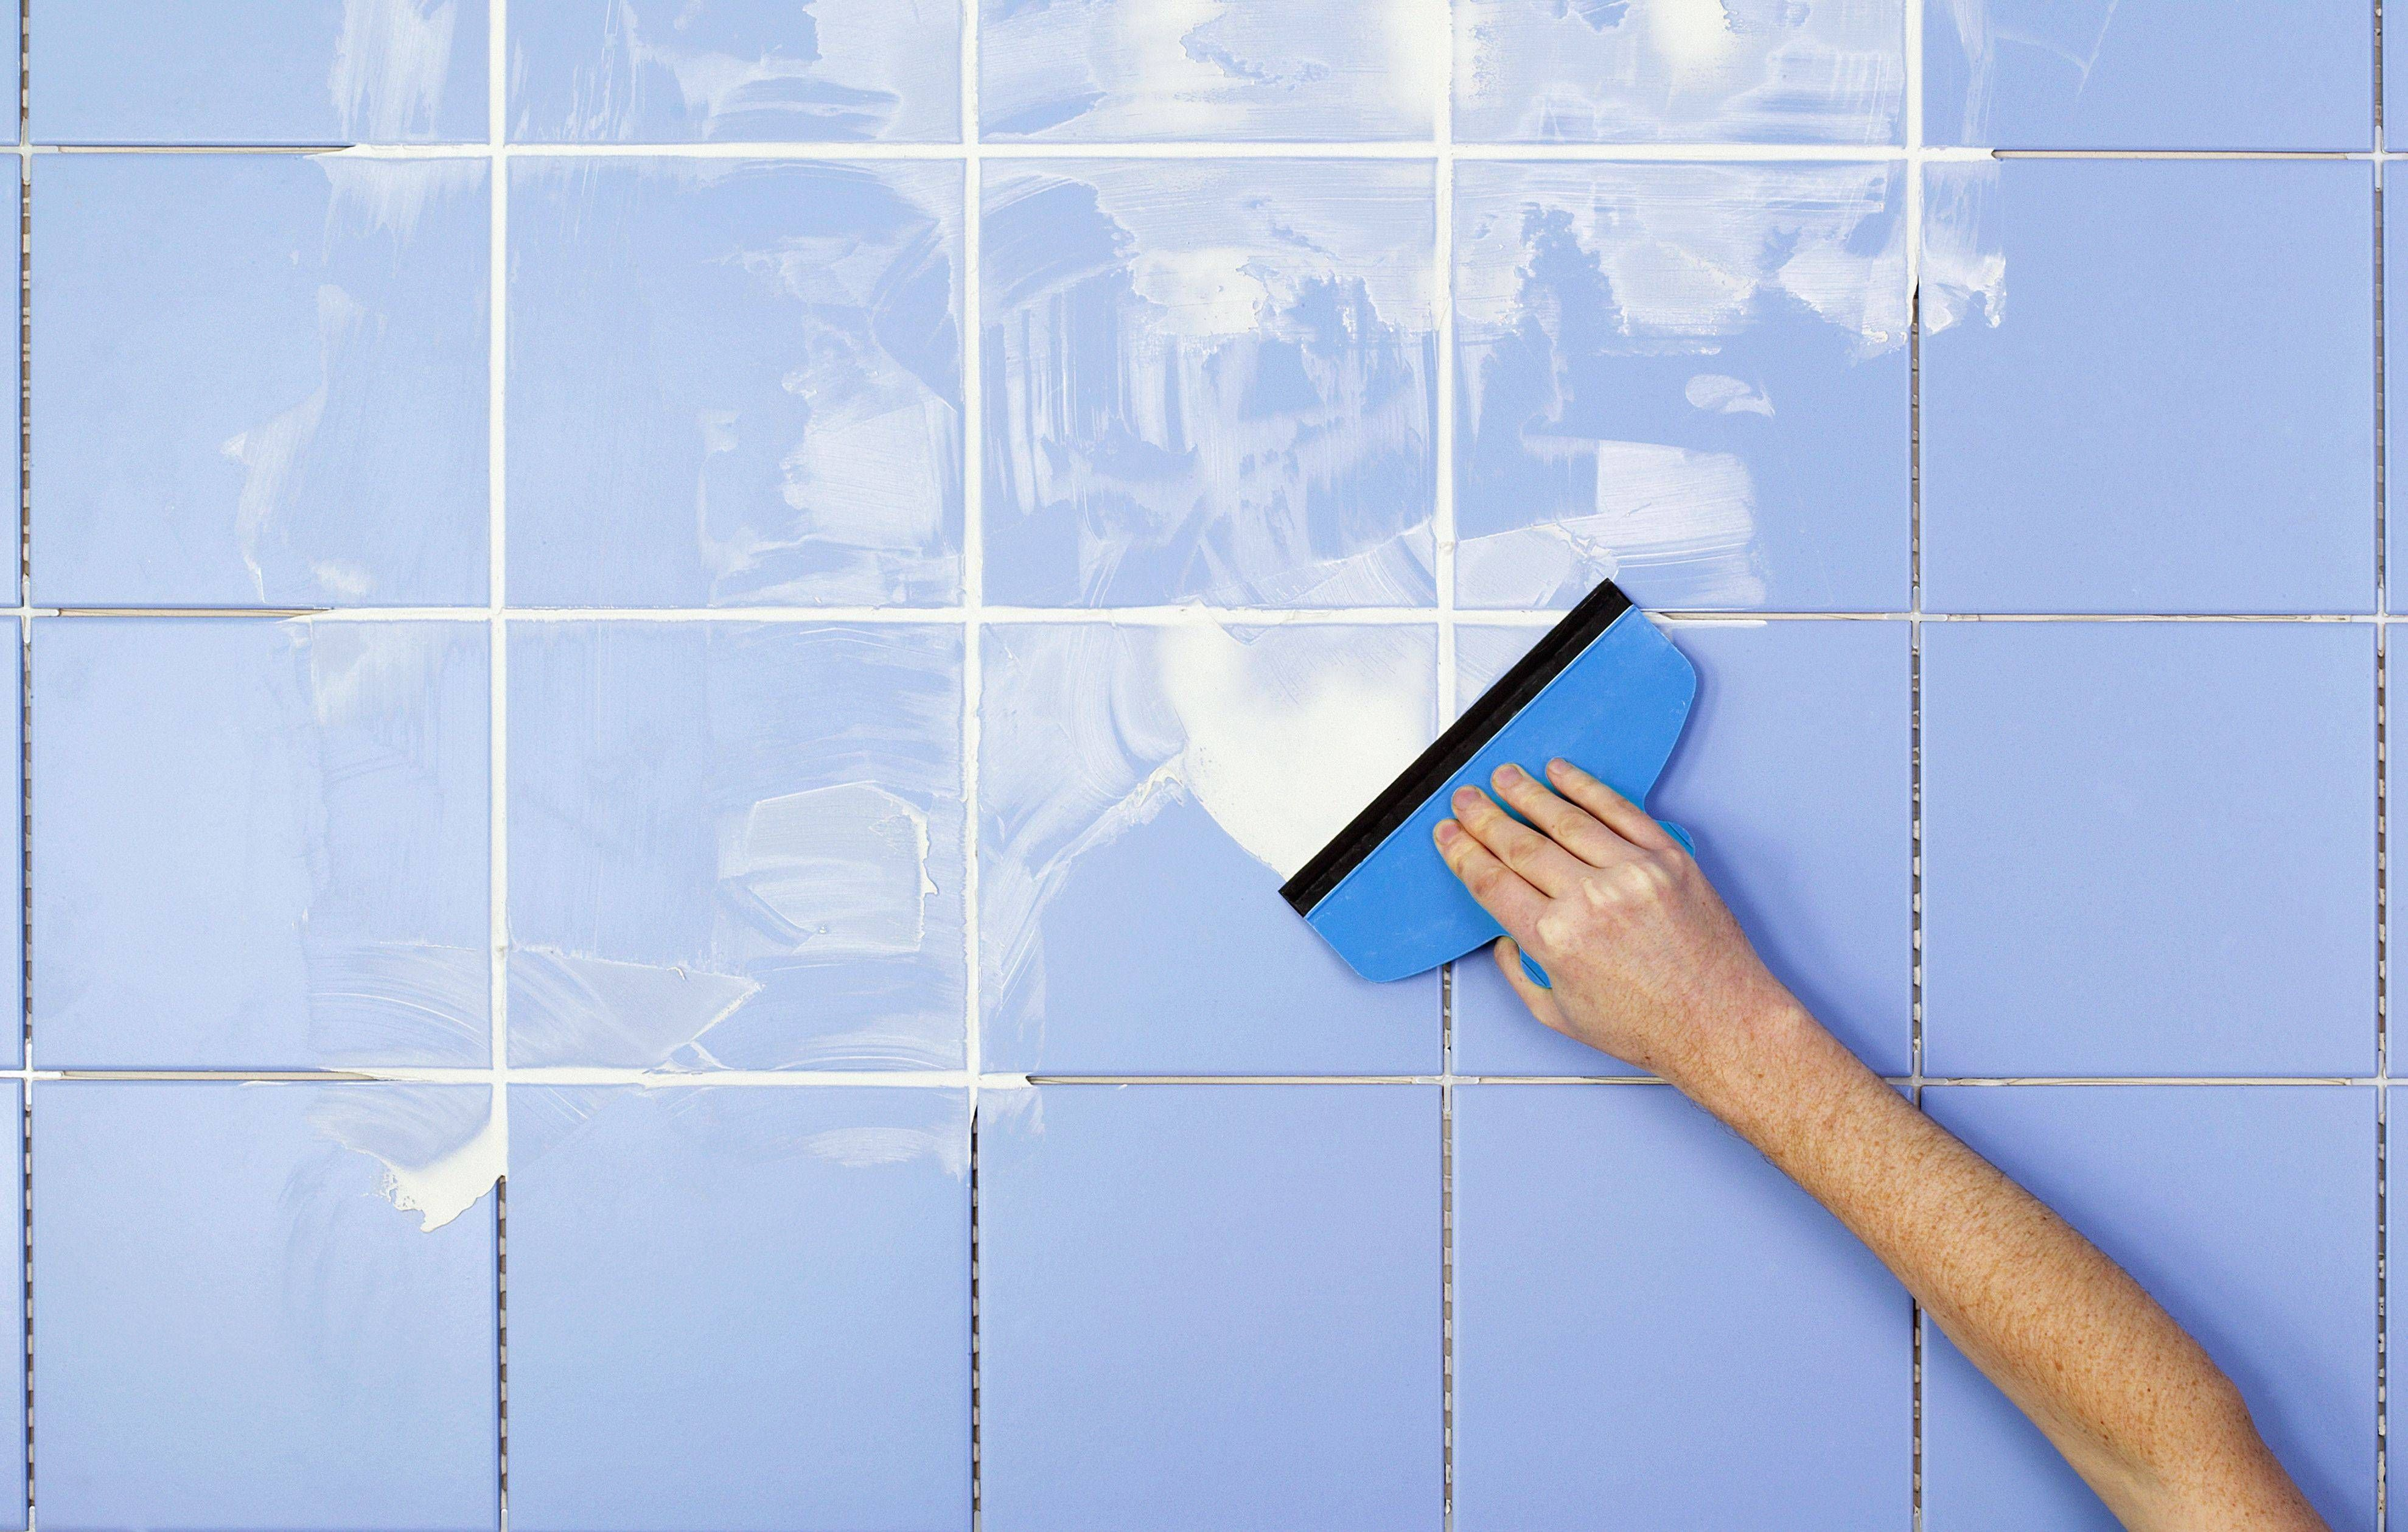 How To Clean Grout Lines In Tile Floor Buildingdesign Homedesign Architecture Home Design Housedesignidea Privatehomedesign Architecture